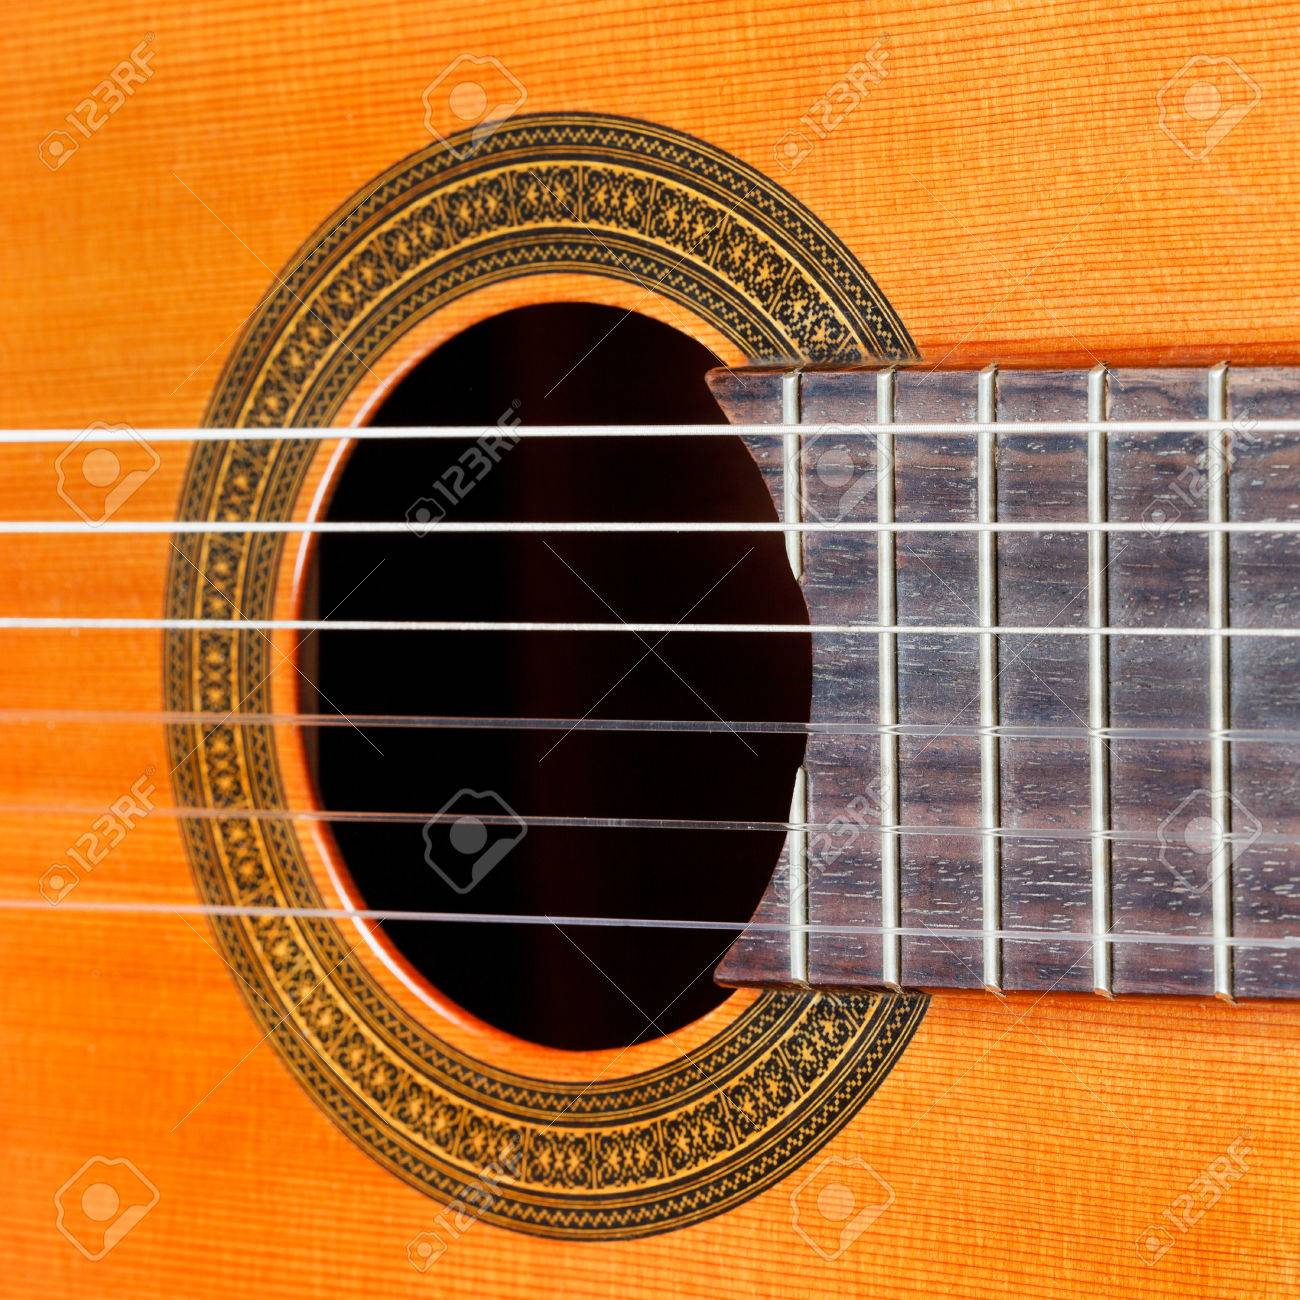 Fretboard And Sound Hole Of Classical Acoustic Guitar With Six Nylon Strings Close Up Stock Photo